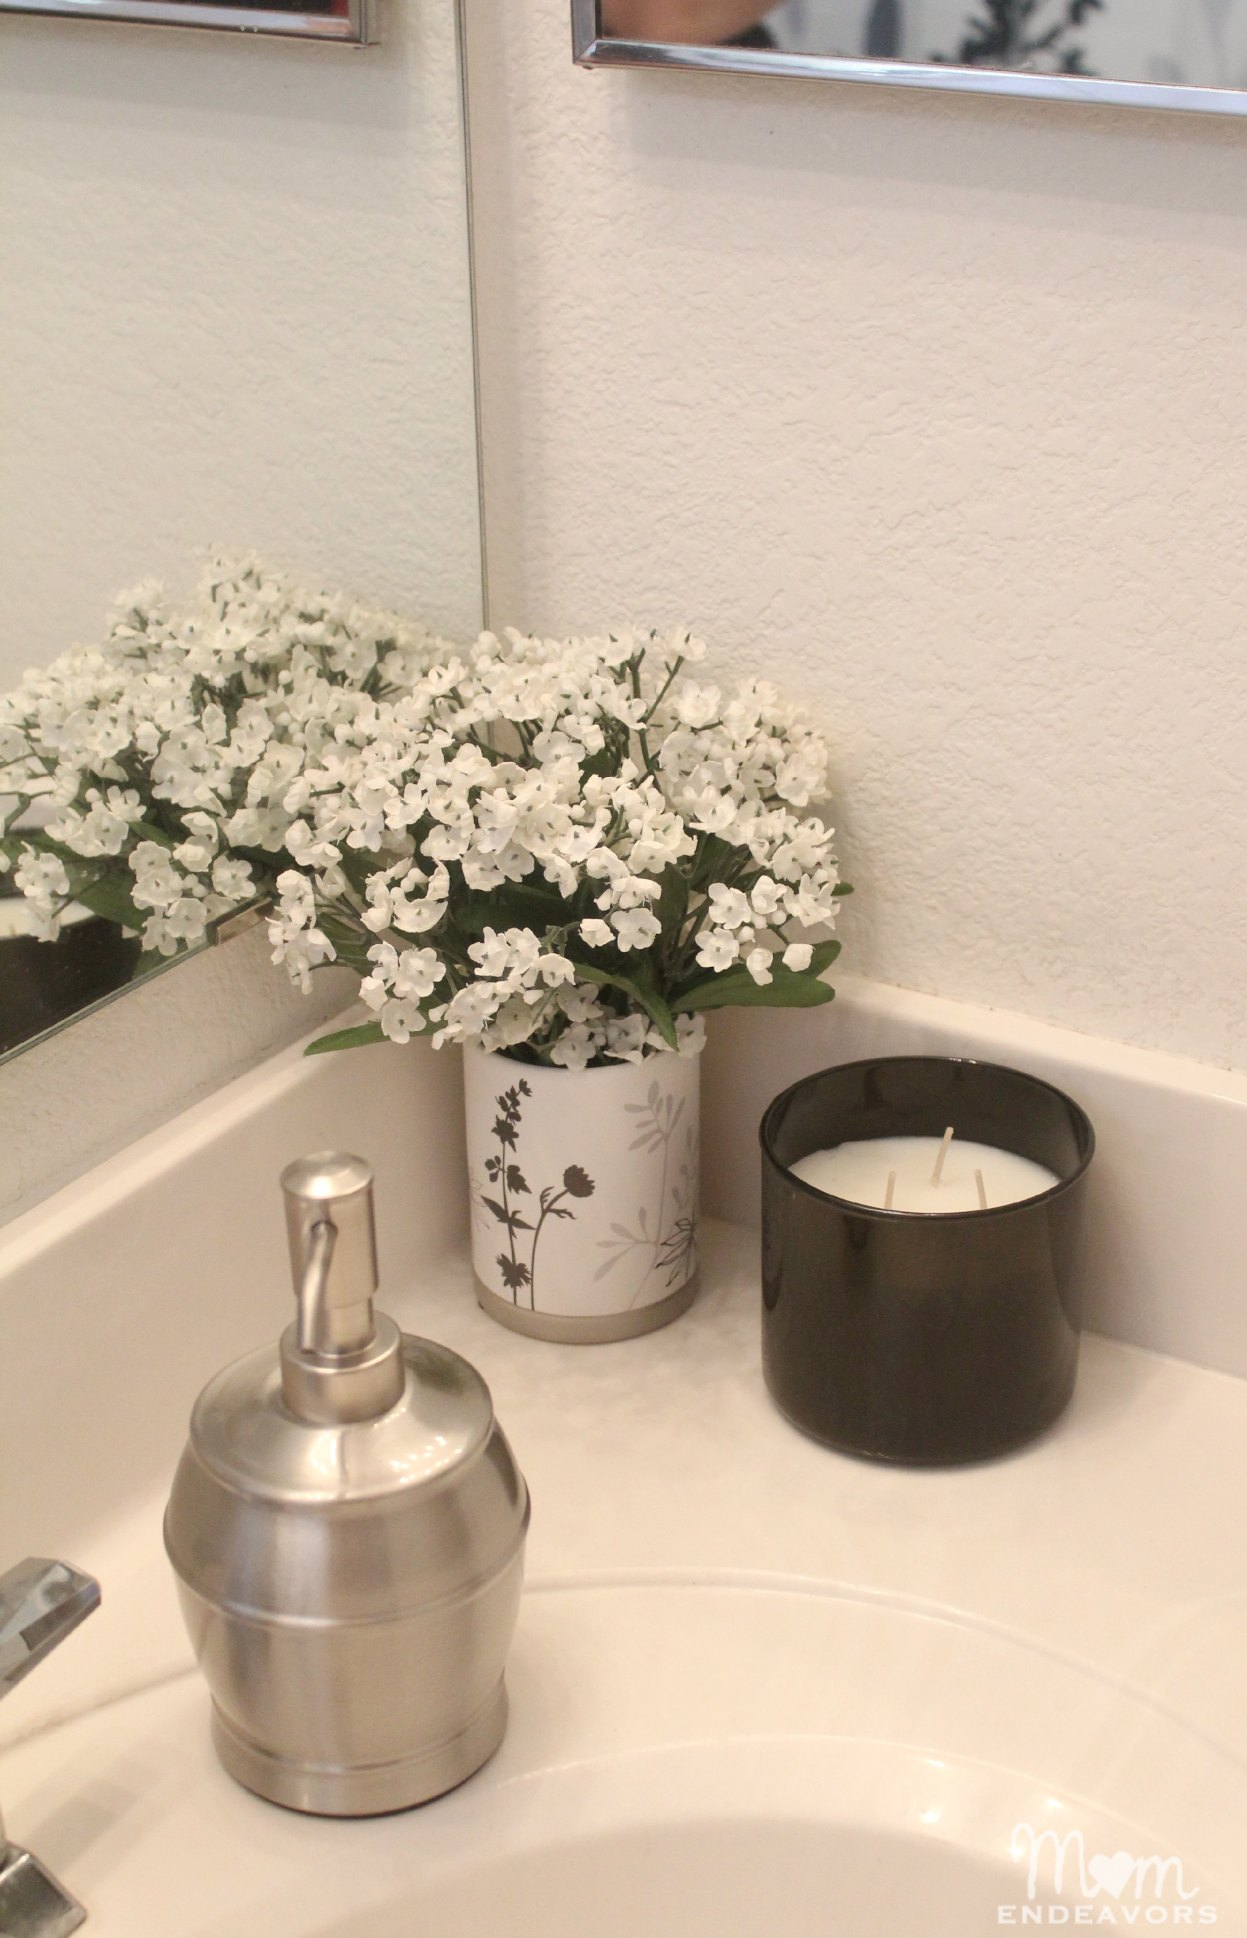 Simple Bathroom decor